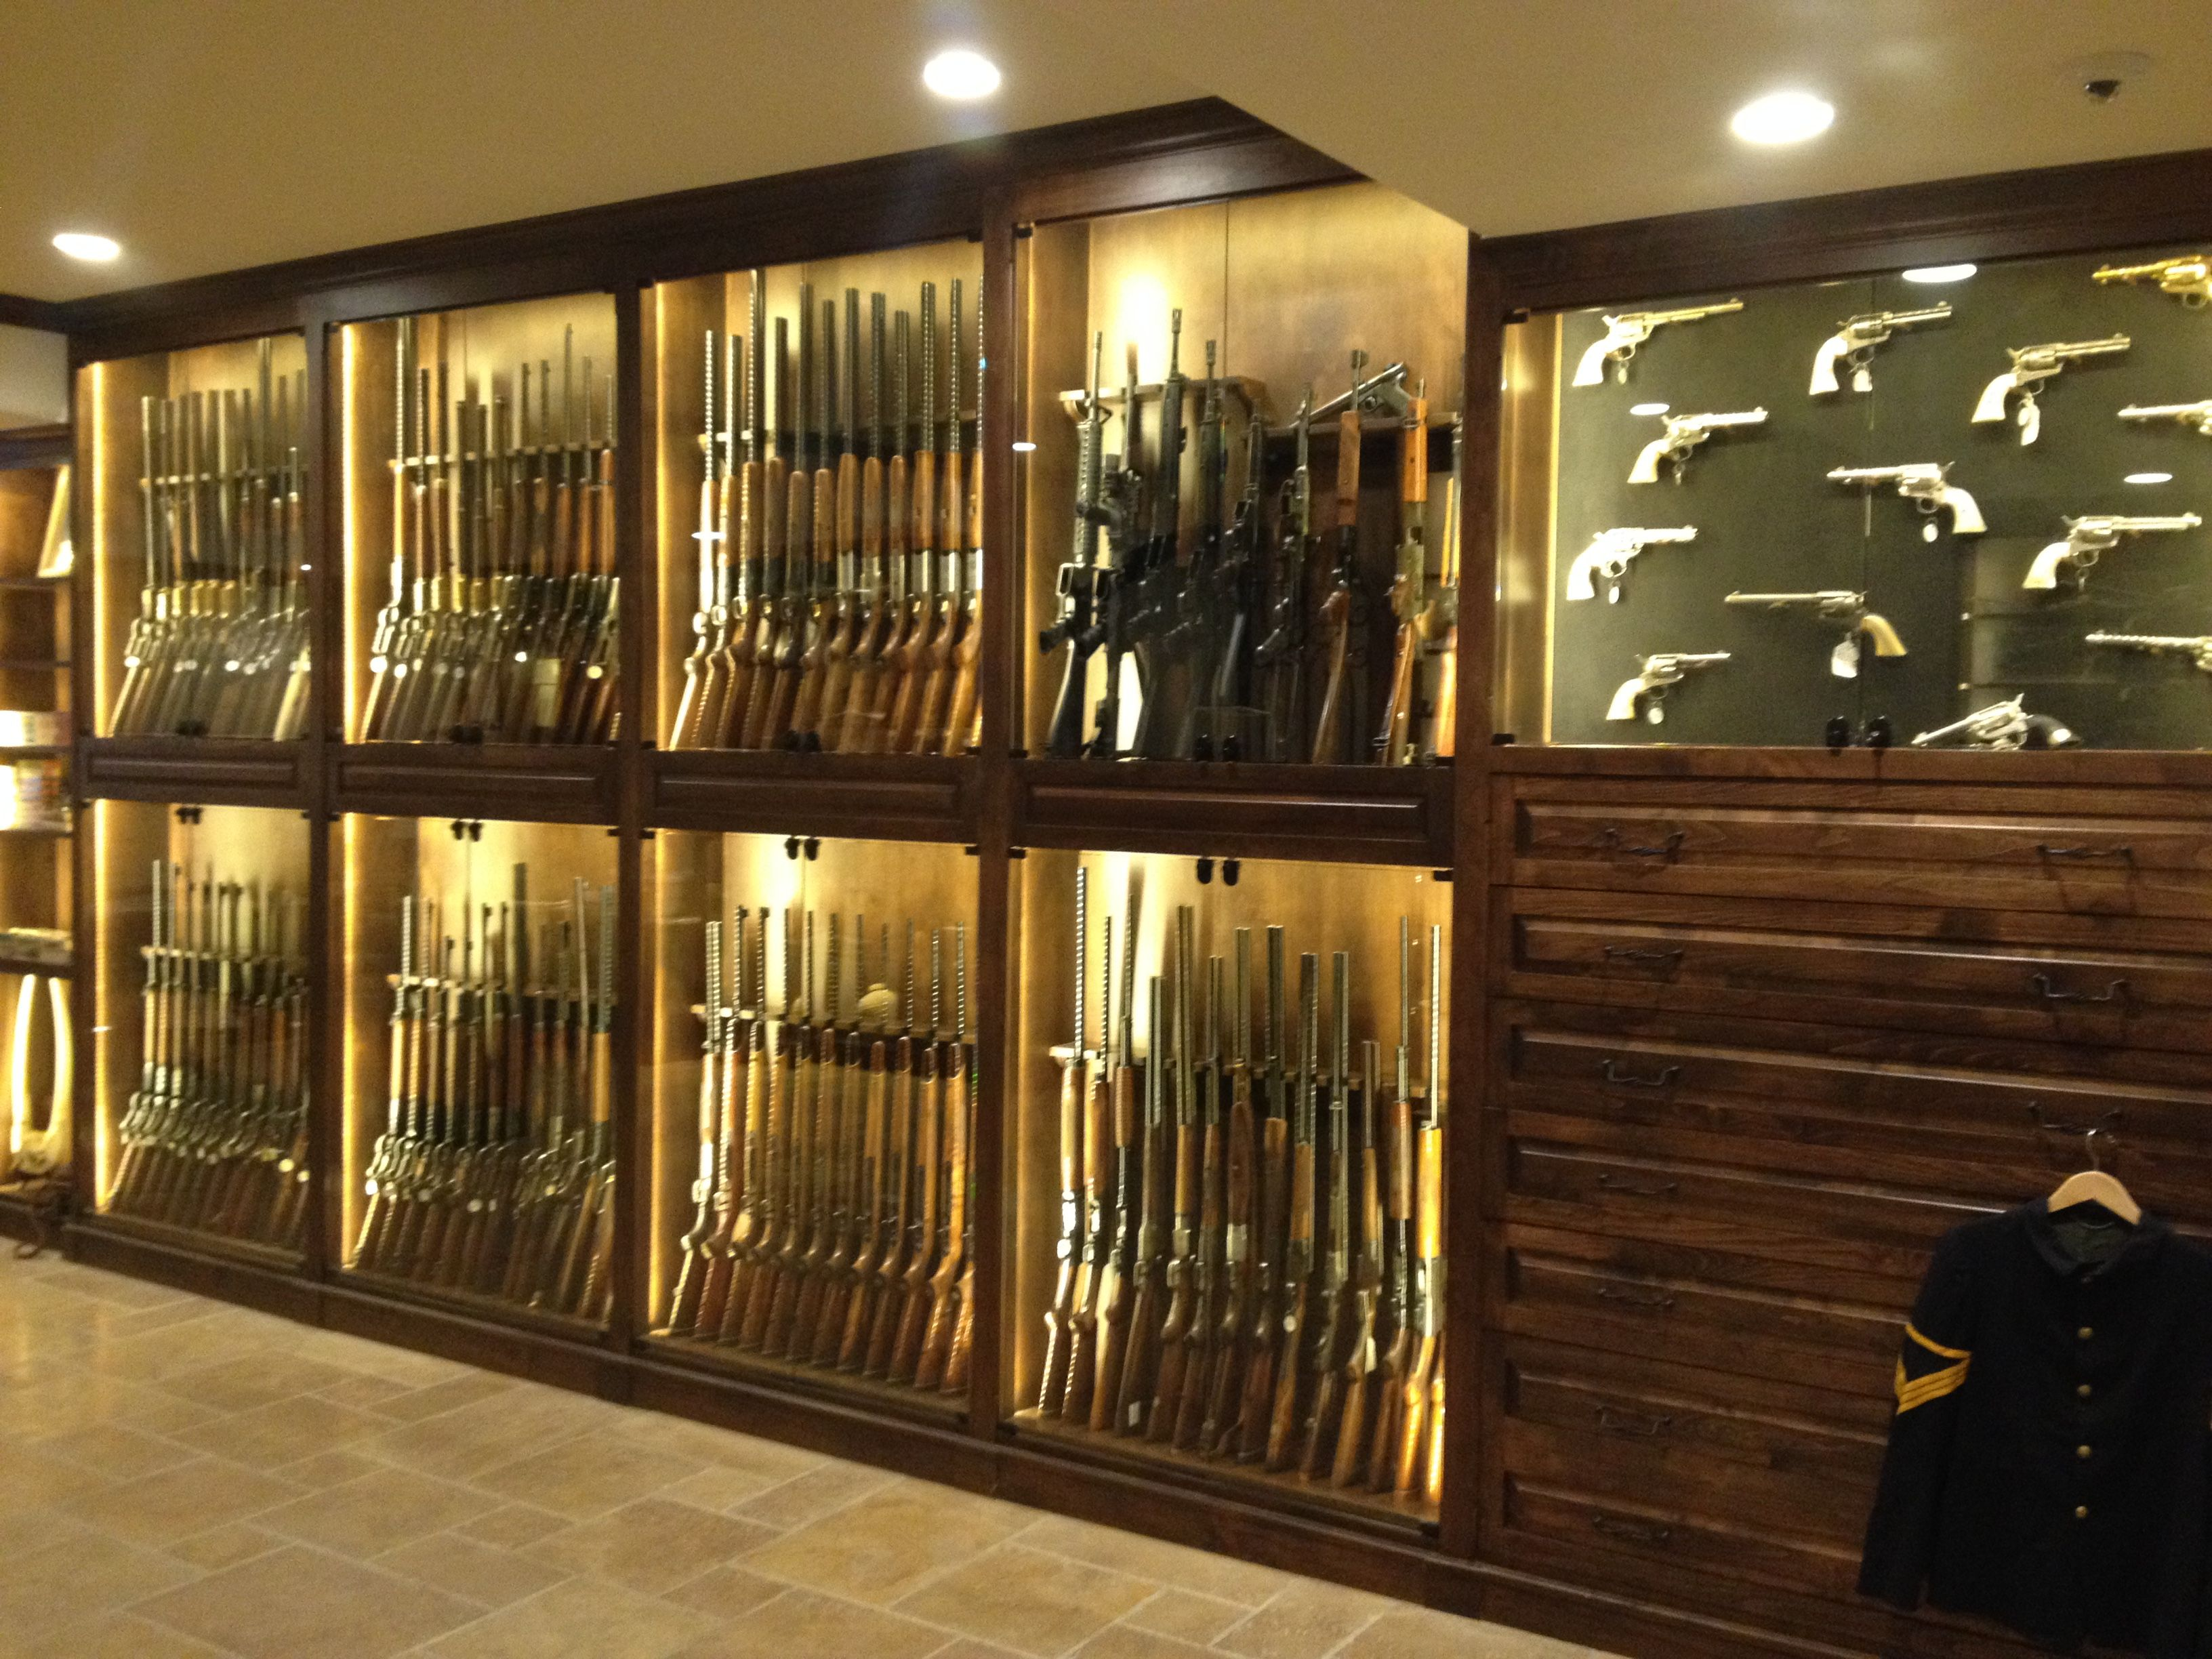 Hand crafted gun room cabinetry by enoch choi design for How to build a gun safe room